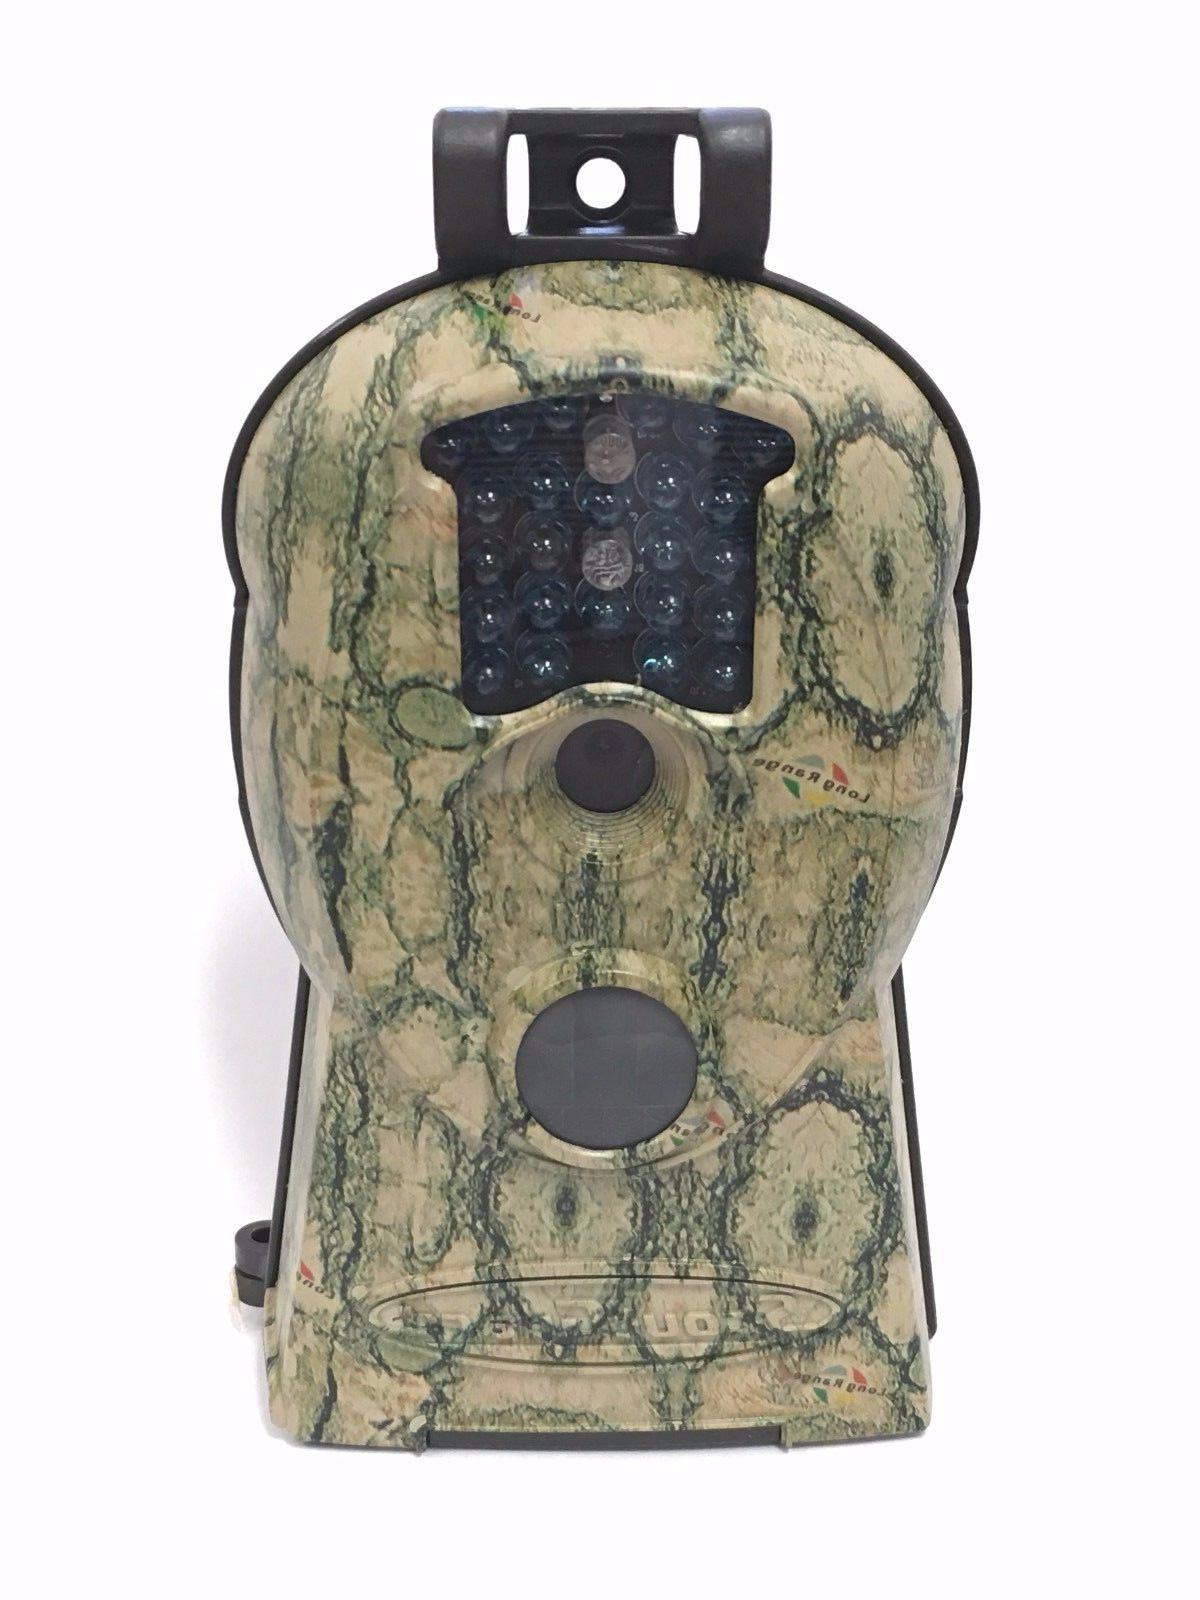 Boly Trail Camera SG370 1080P 940nm flash